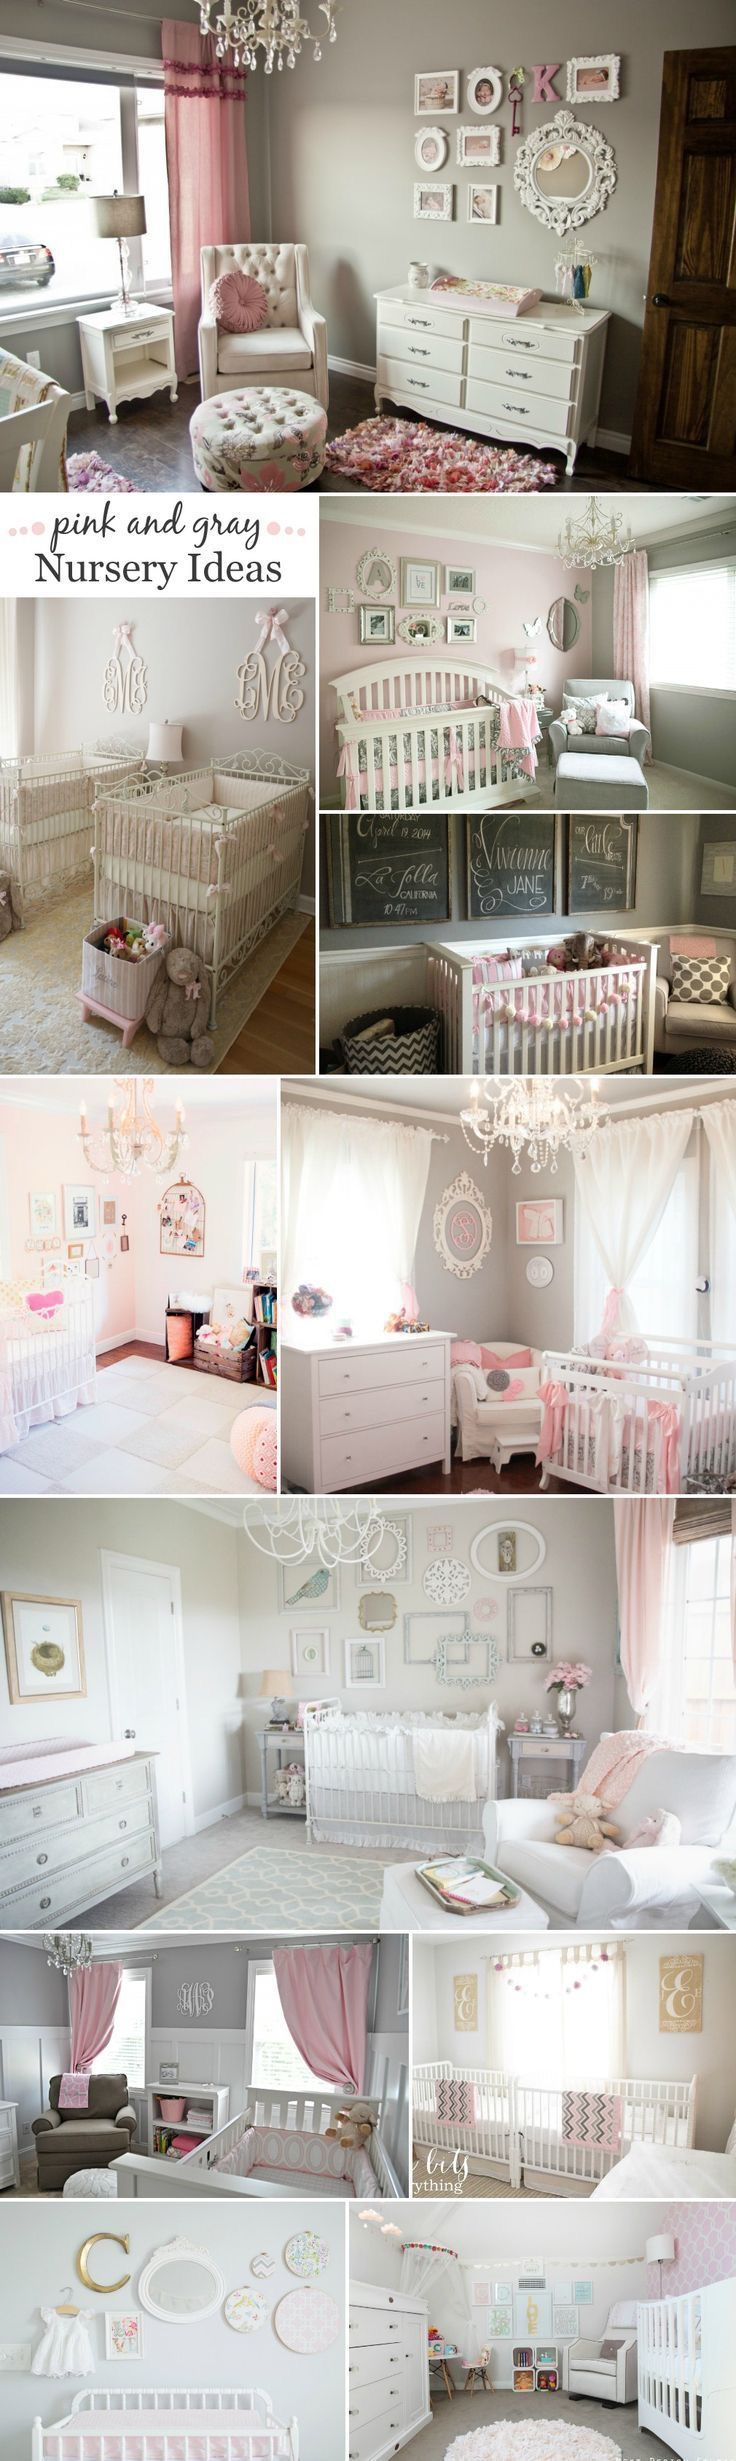 best baby ideas images on pinterest baby room child room and